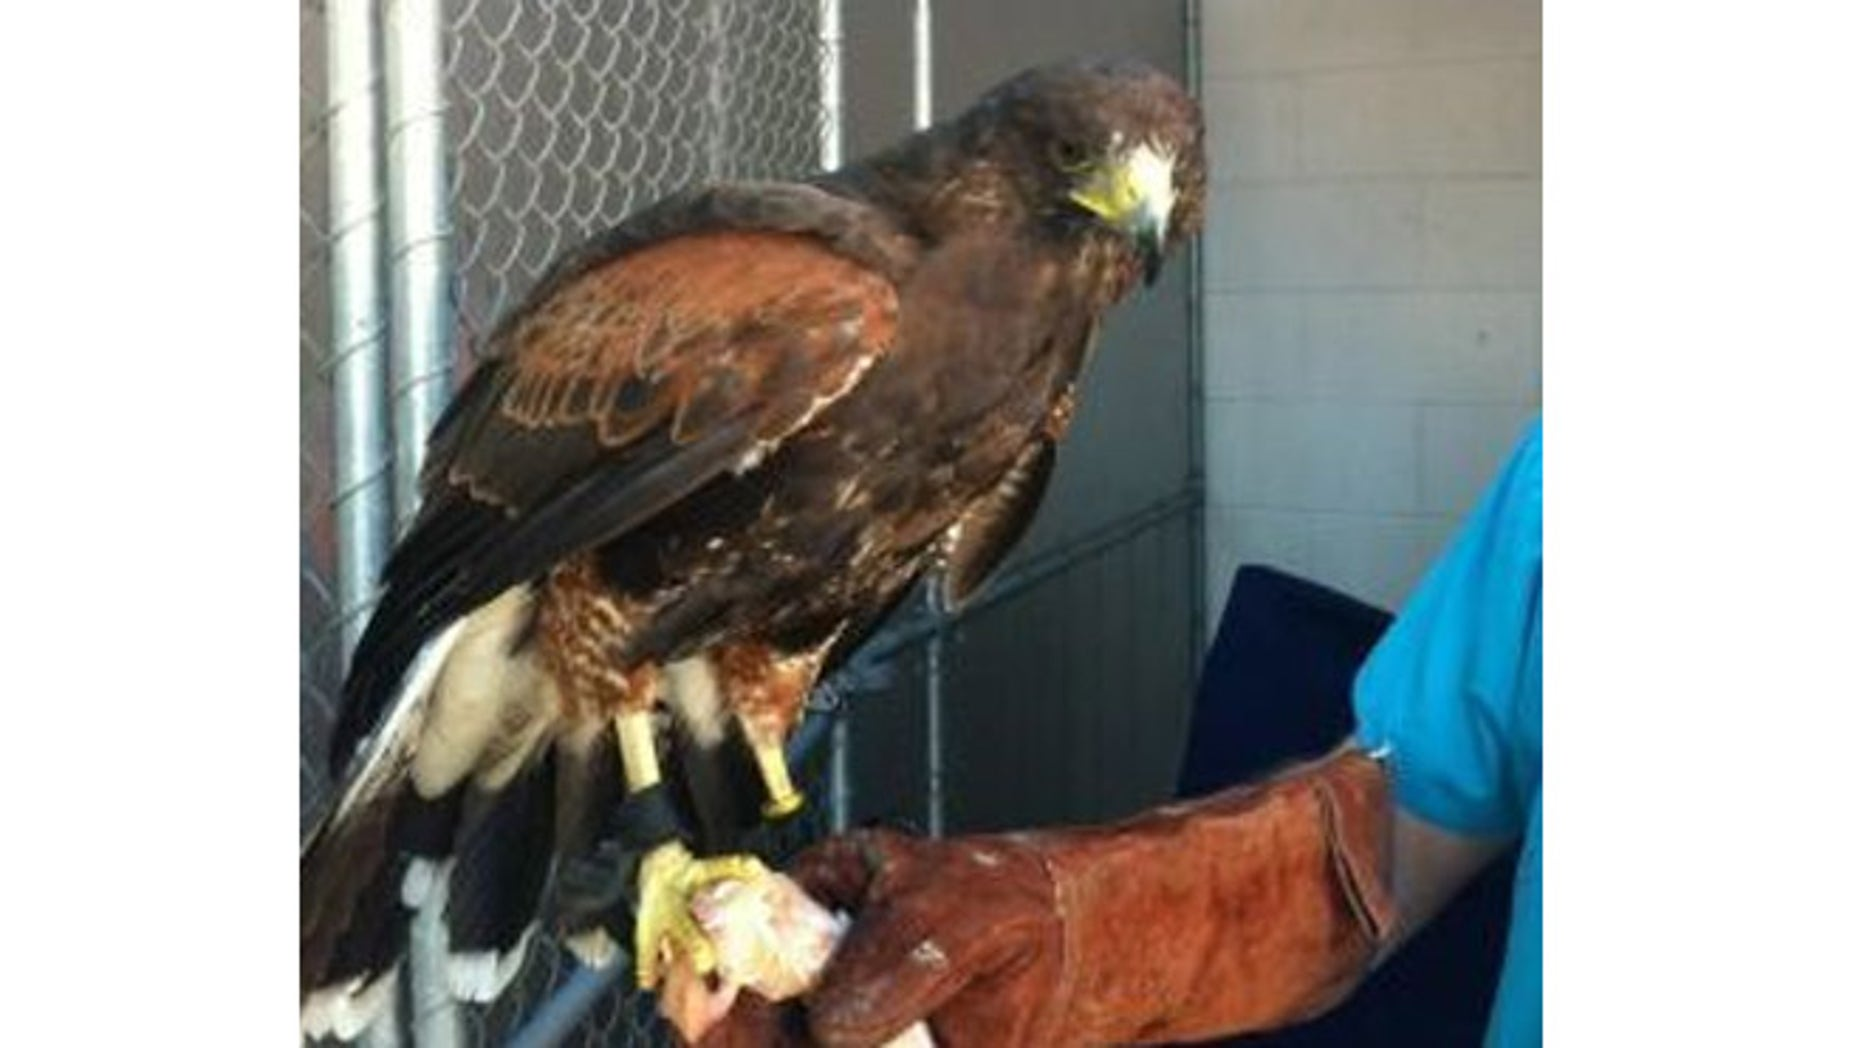 A hawk used for hunting was found outside a California restaurant.